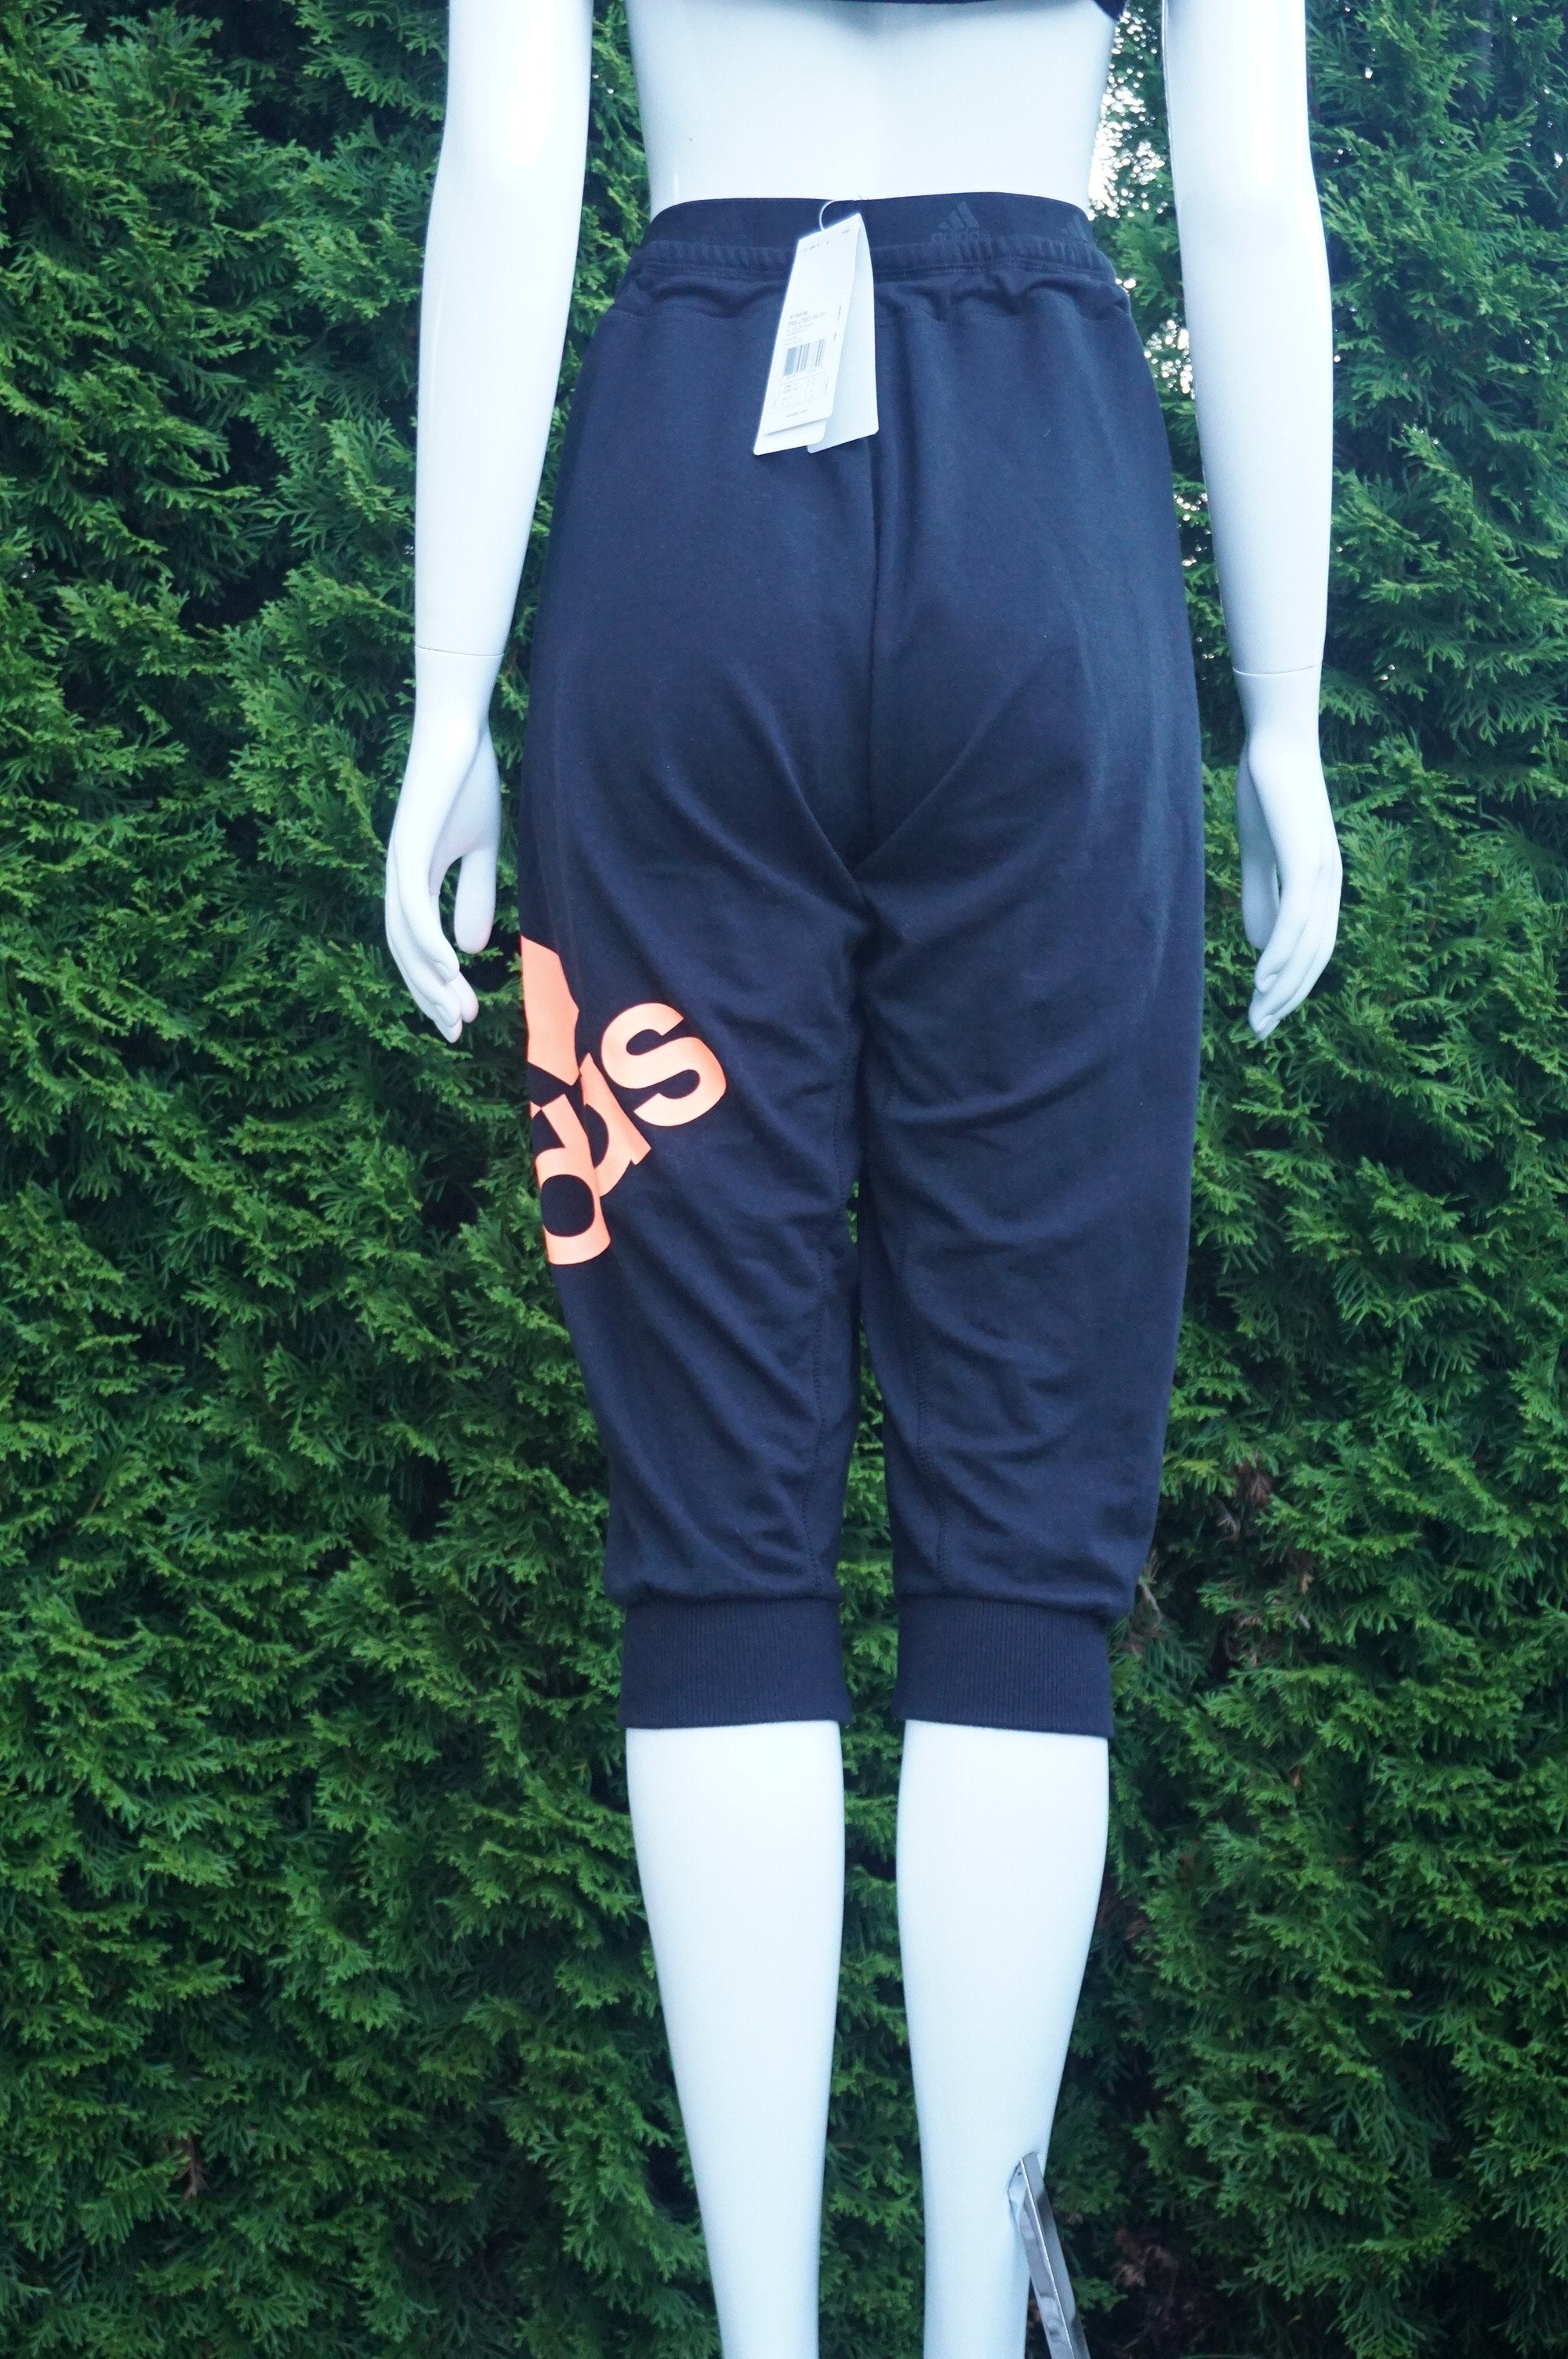 Adidas Comfy Sweatpants, New with tags sweatpants. Waist 31 inches when elastic is relaxed. Length 29.5 inches. Adjustable waist strap, Black, Orange, women's Pants, women's Black, Orange Pants, Adidas women's Pants, sweatpants. Comfy pants, stay at home pants